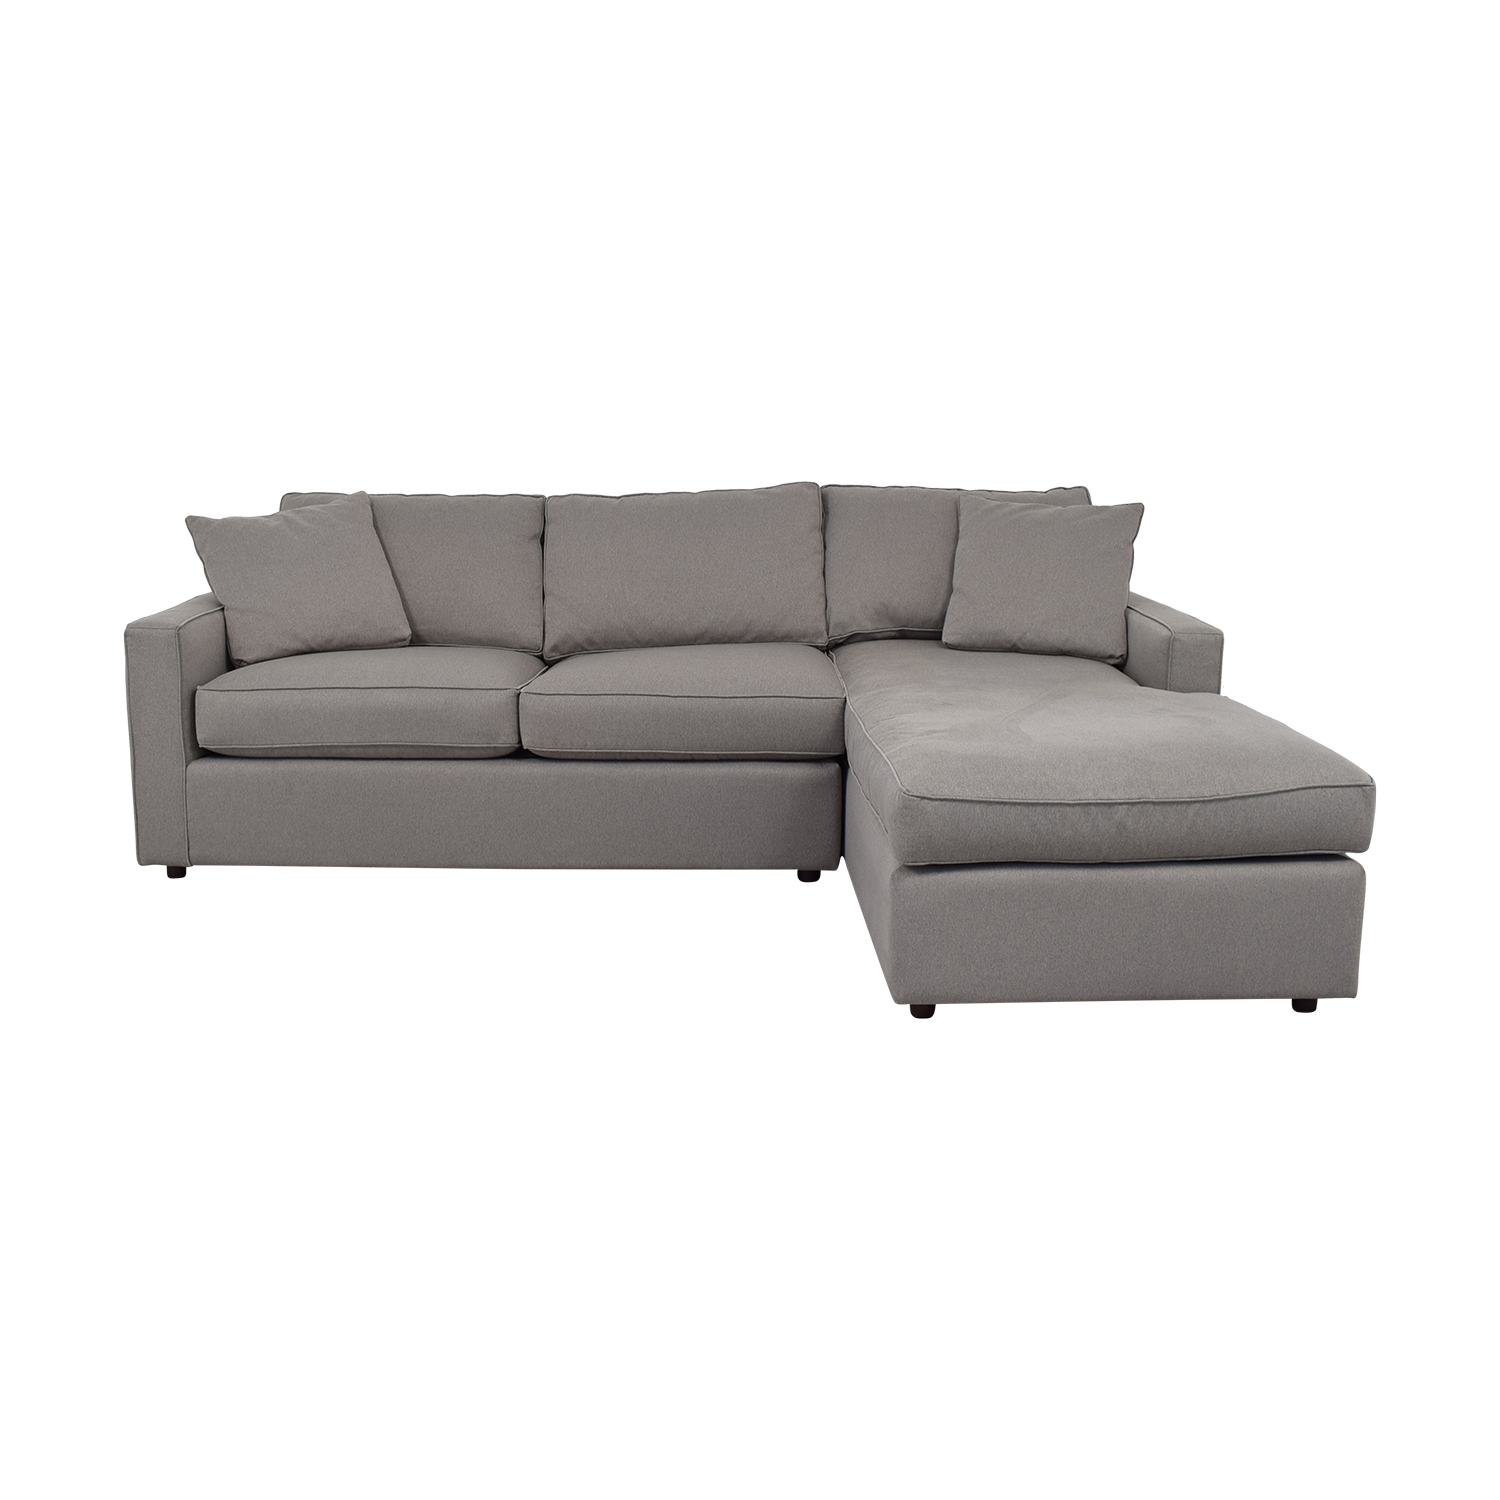 Room & Board York Sofa with Chaise sale